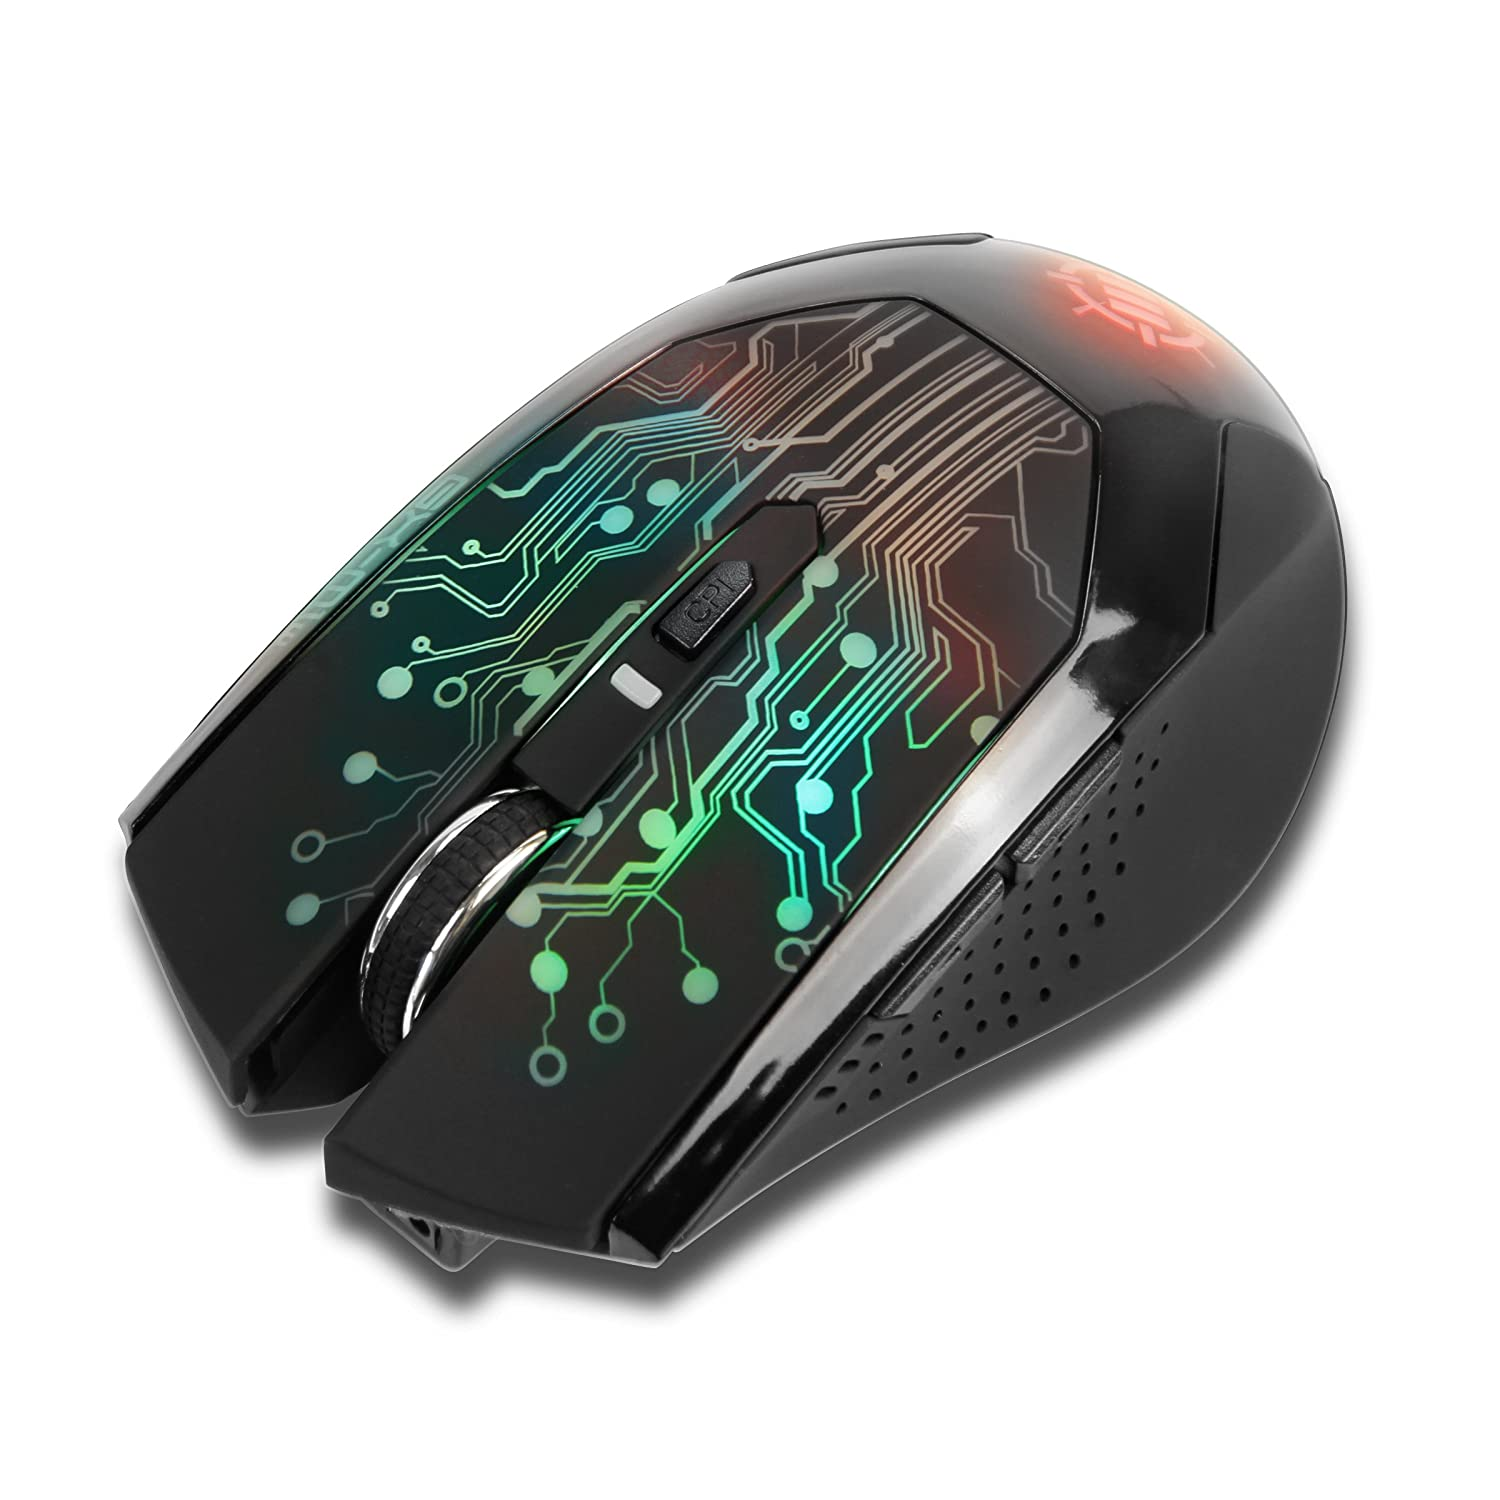 Amazon.com: ENHANCE Wireless Gaming Mouse with 3500 DPI , Precision ...